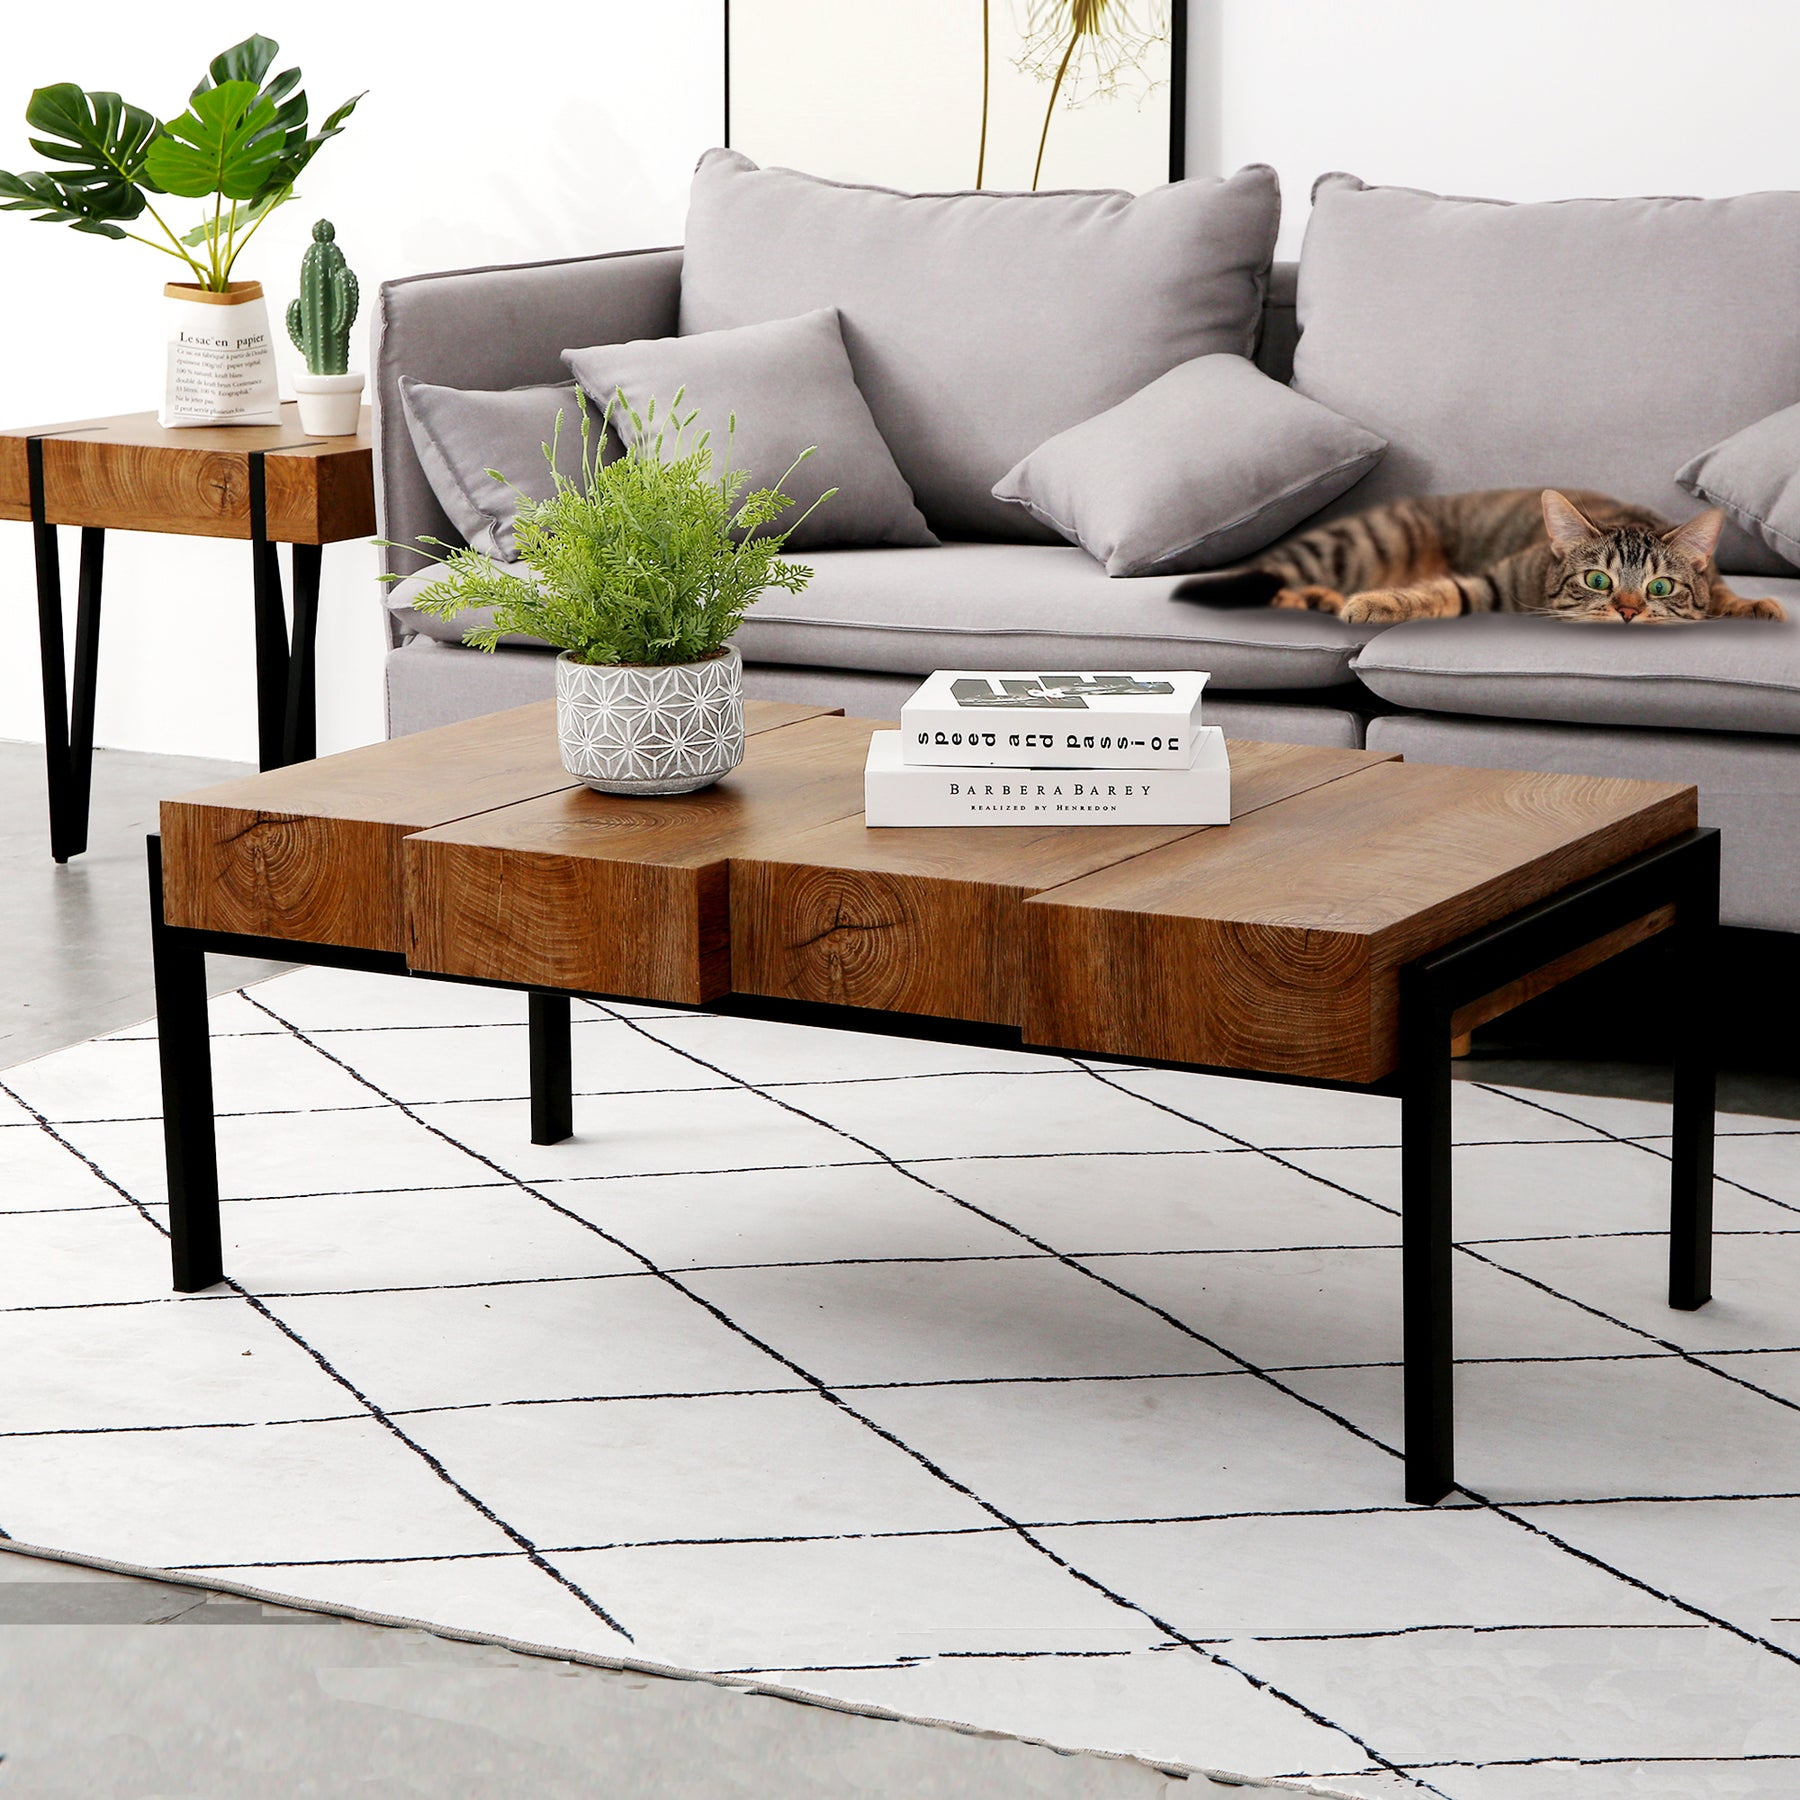 - Mcombo Modern Industrial Simple Design Wood Coffee Table For